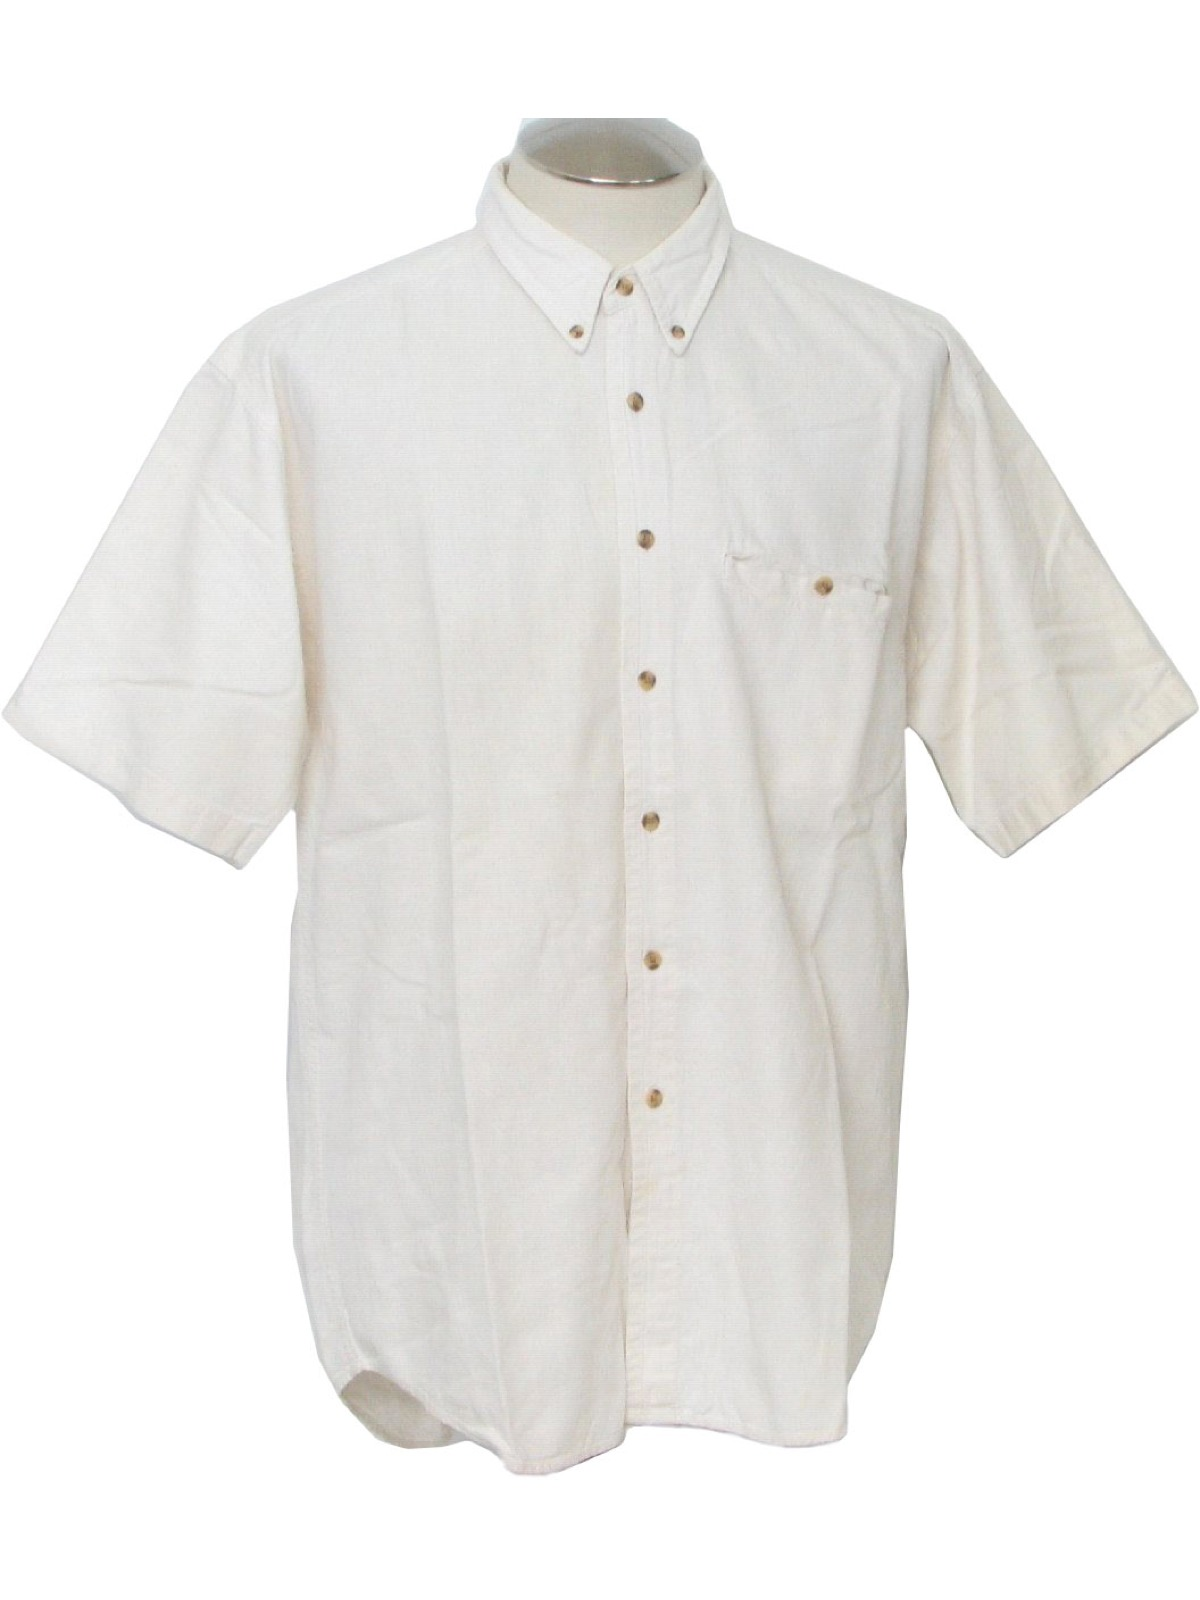 Retro 1980's Shirt (Gap) : 80s -Gap- Mens linen and cotton, ivory ...